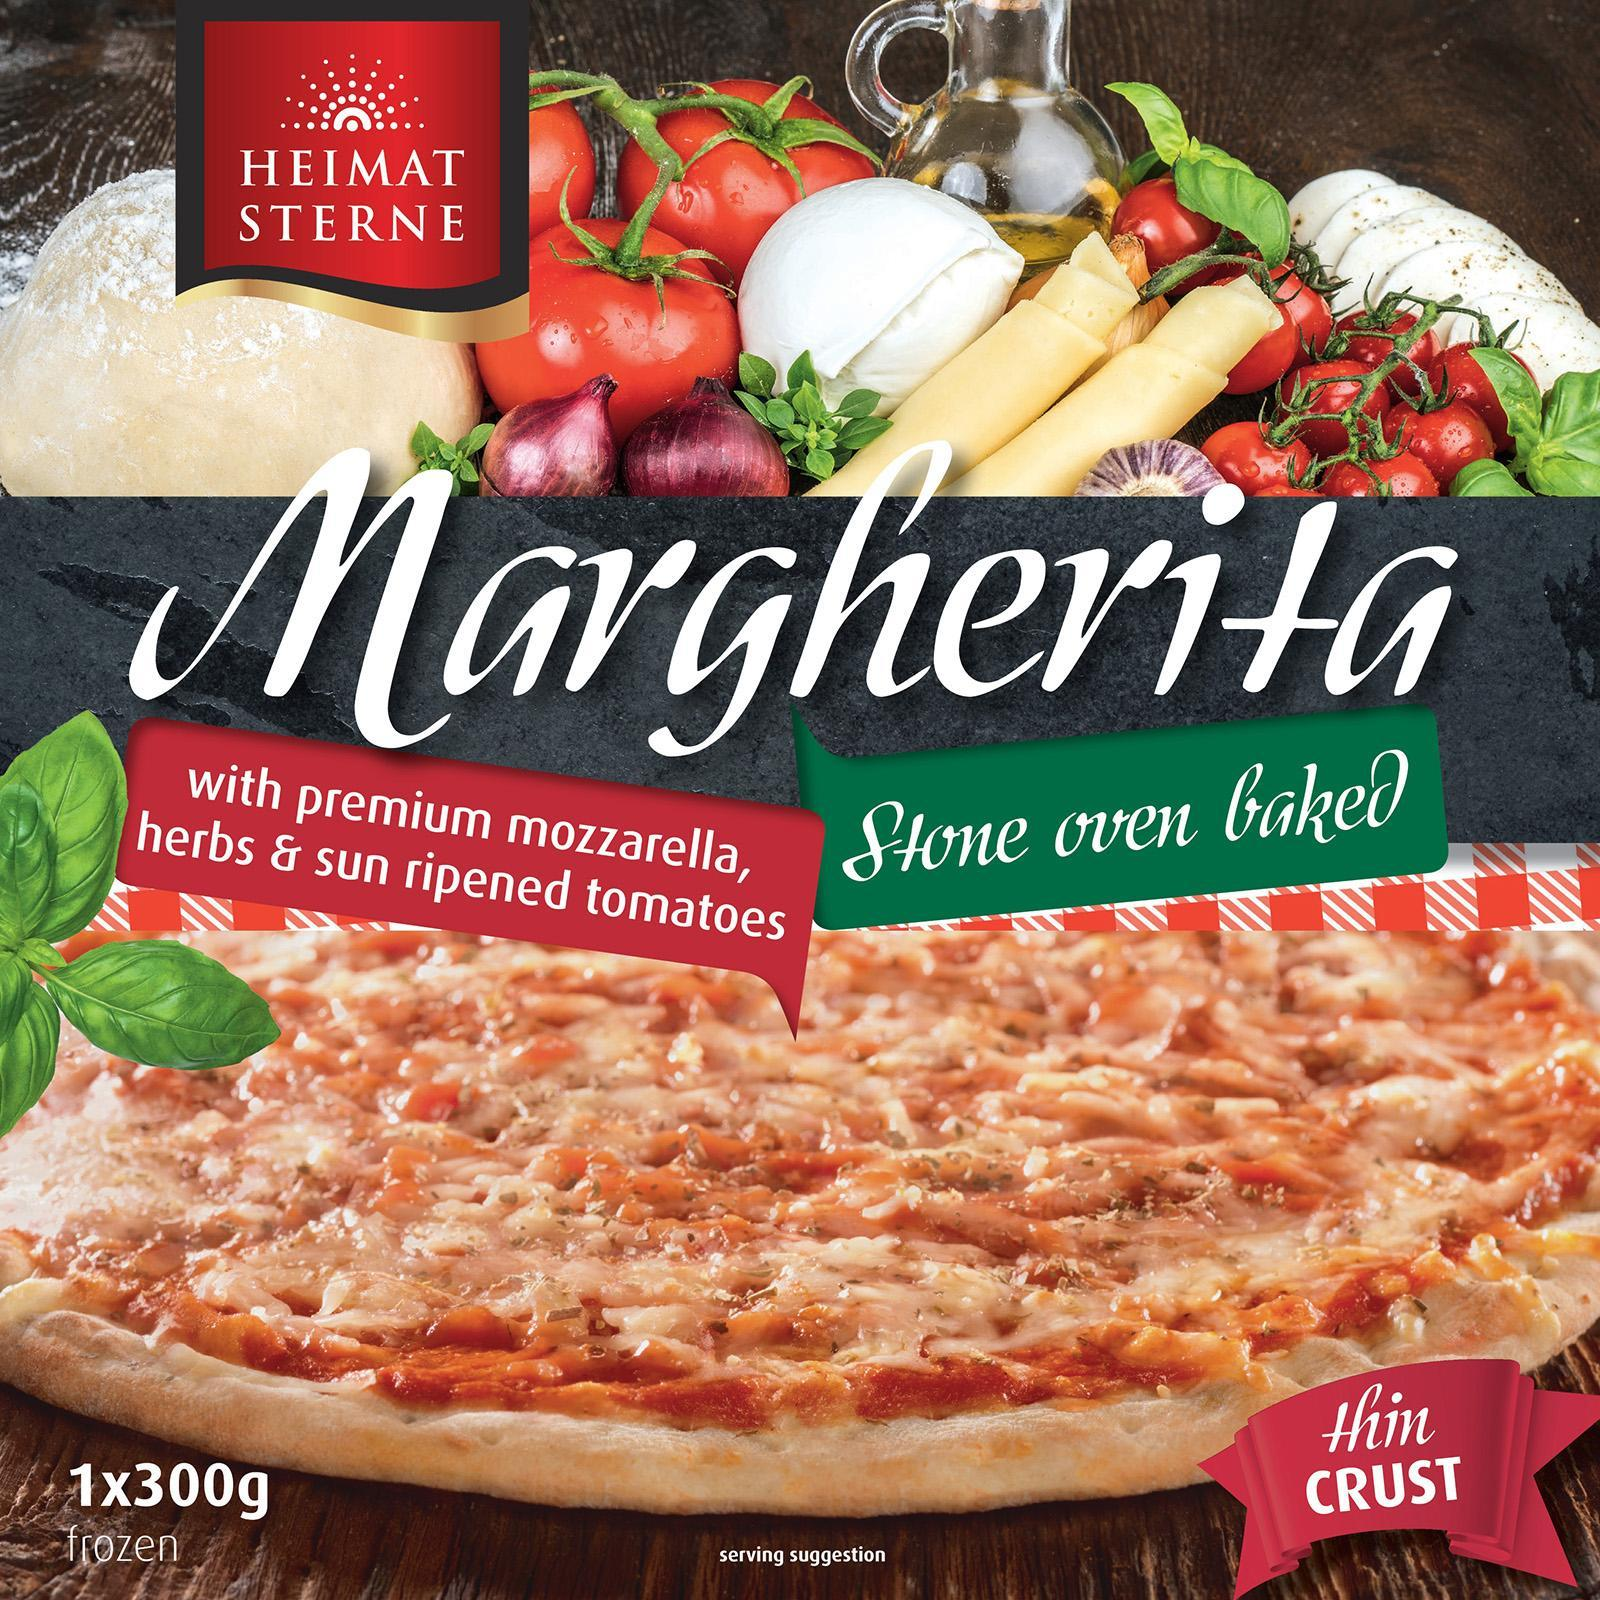 Heimatsterne Margherita Thin Crust Pizza - Frozen By Redmart.